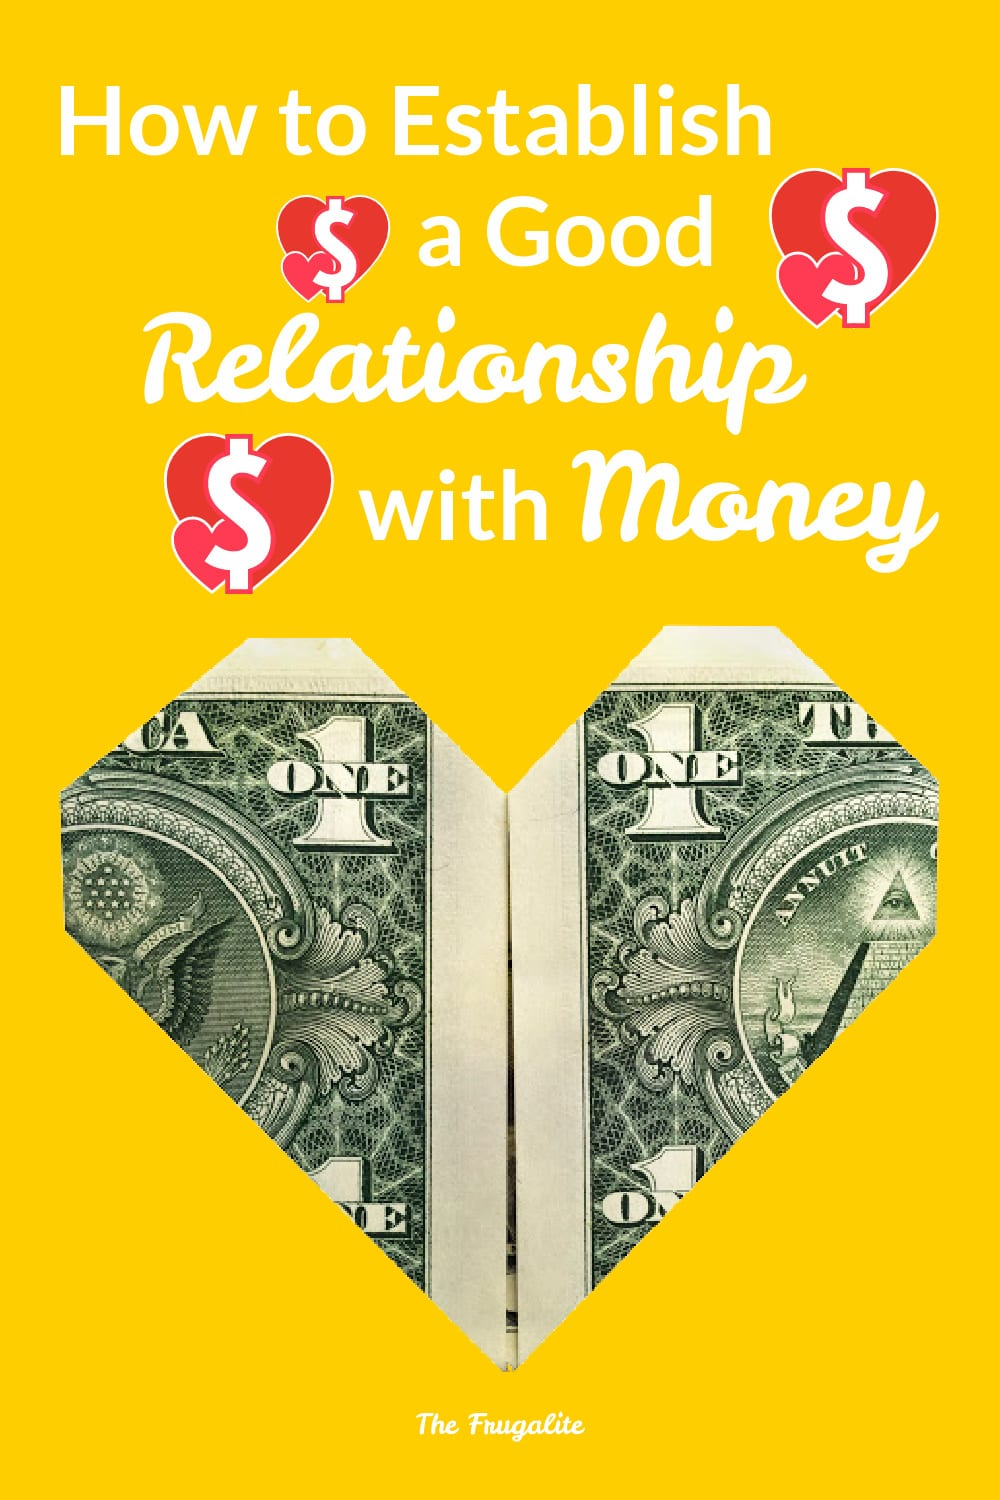 How to Establish a Good Relationship With Money